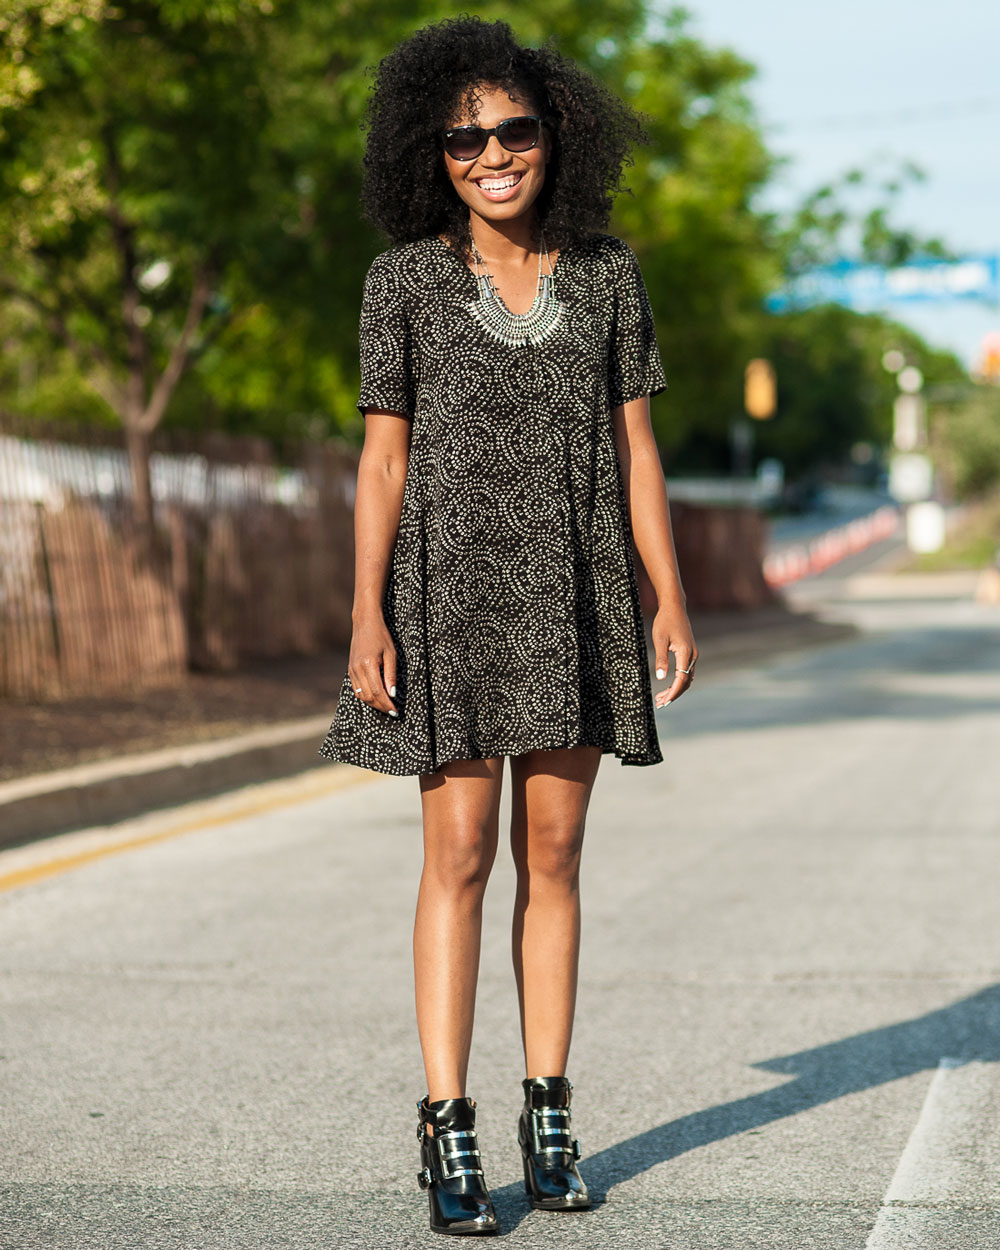 Urban Summer Dresses